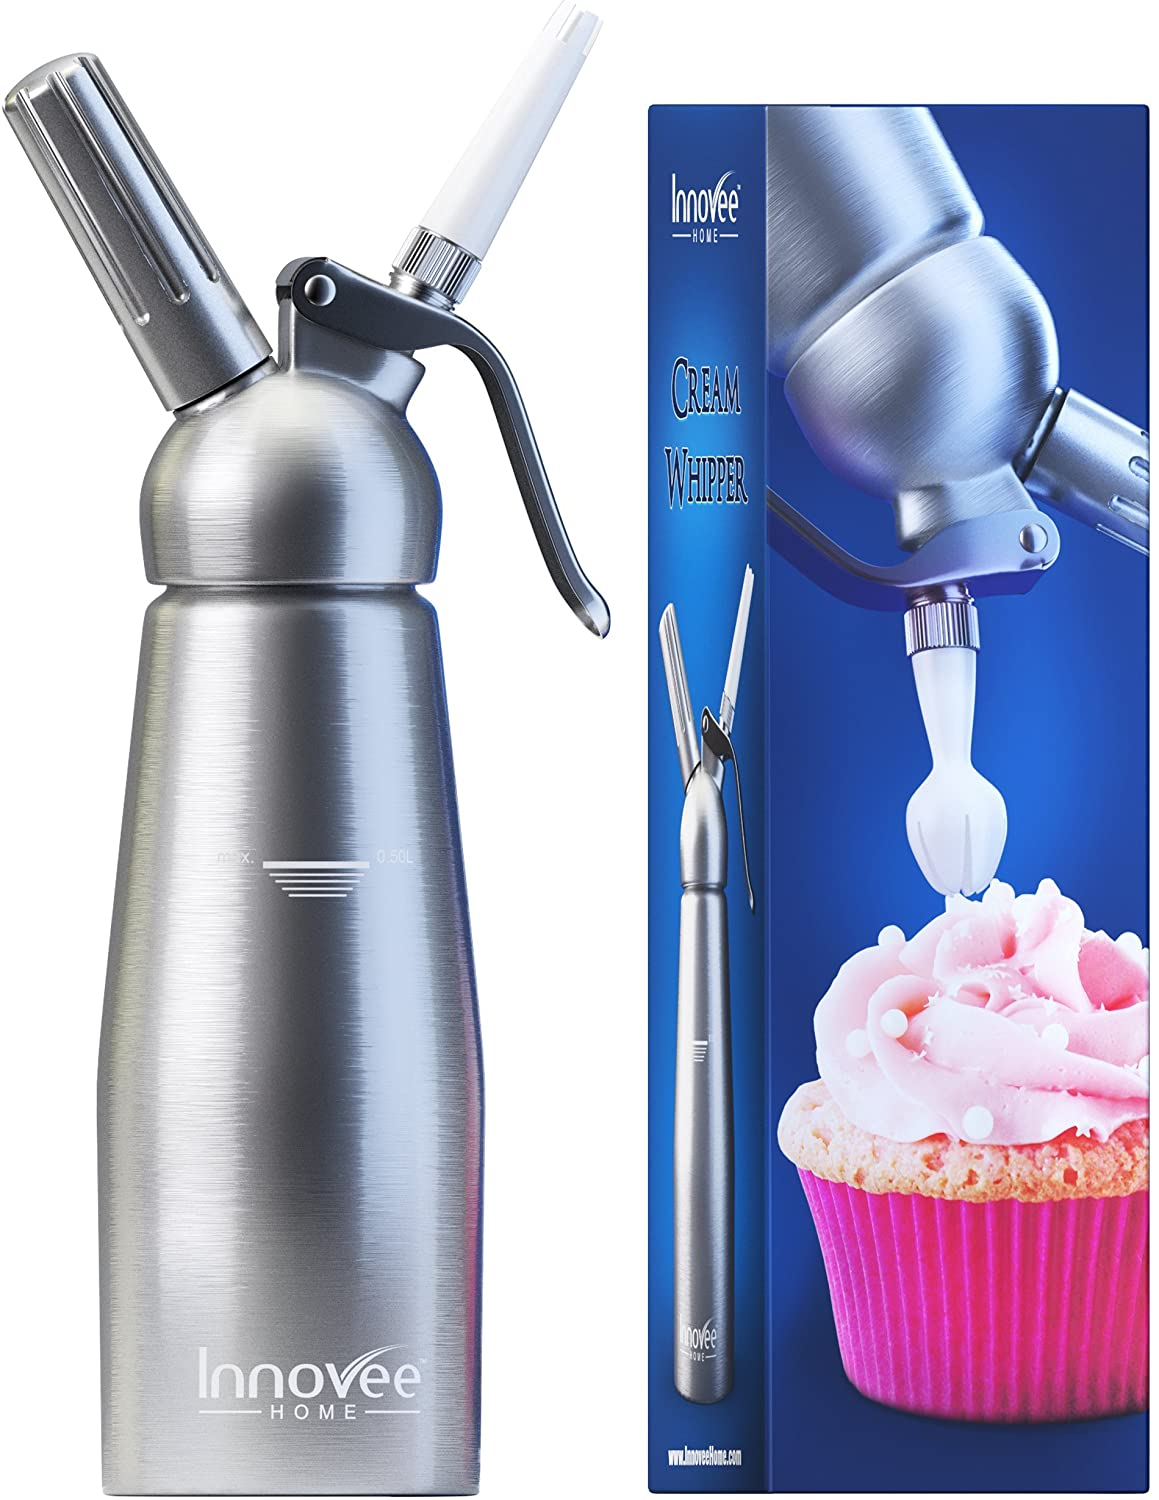 Innovee Cream Whipper (1-Pint) Professional Aluminum Whipped Cream Dispenser W/ 3 Decorating Nozzles & Free Desserts Recipes (e-book) Uses Standard N20 Cartridges (not included) Innovee Home XK1008